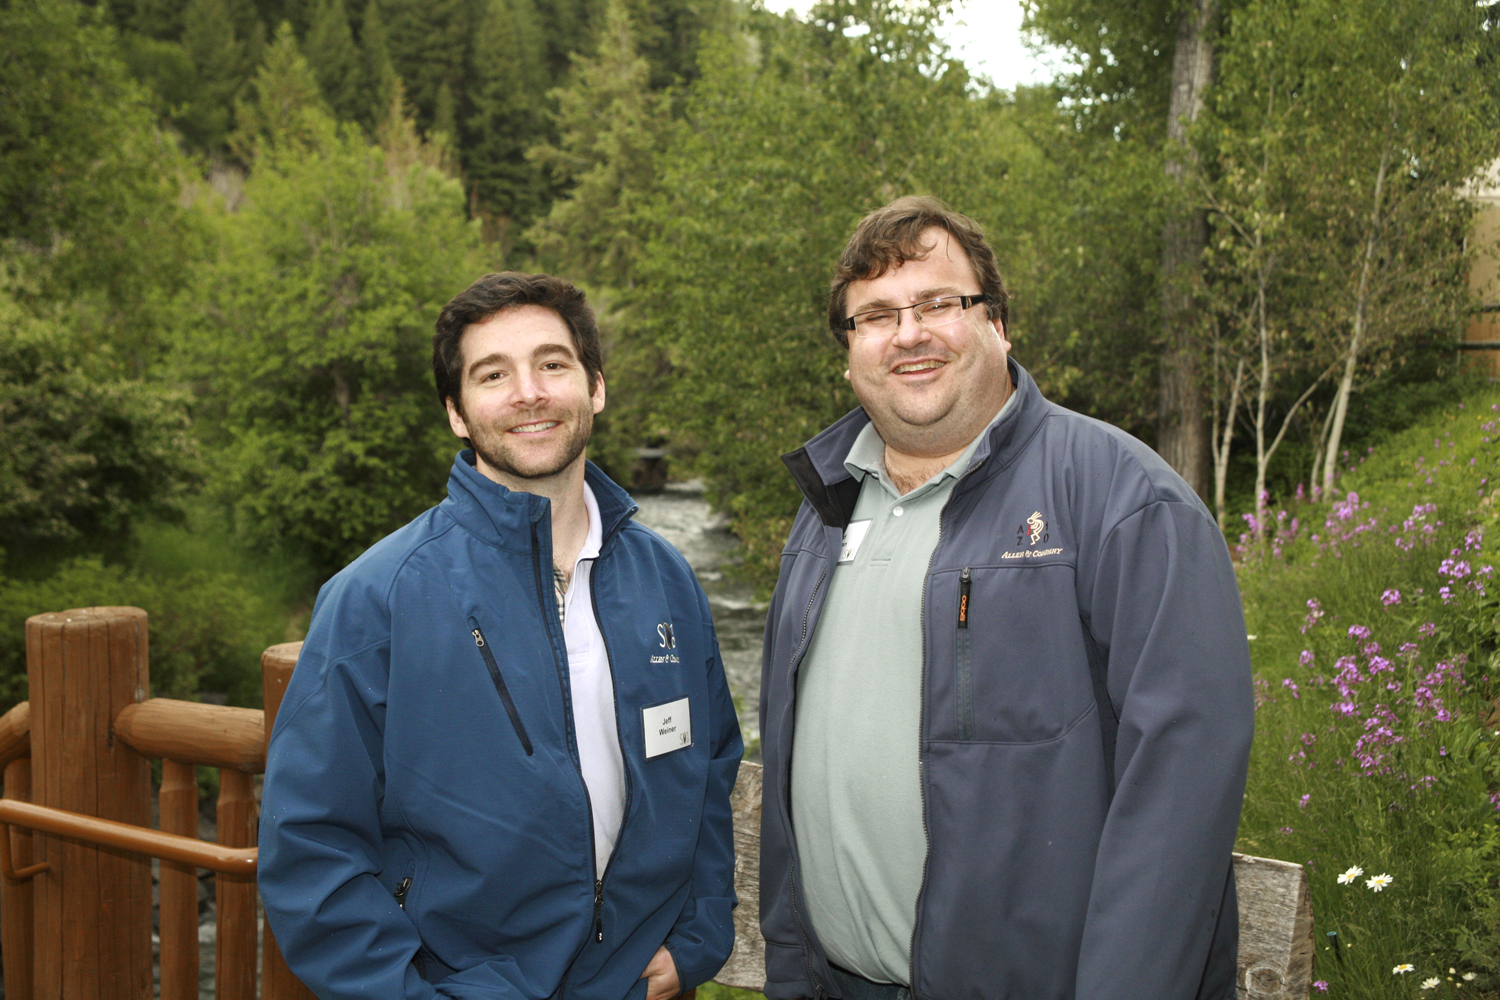 LinkedIn's Jeff Weiner and Reid Hoffman